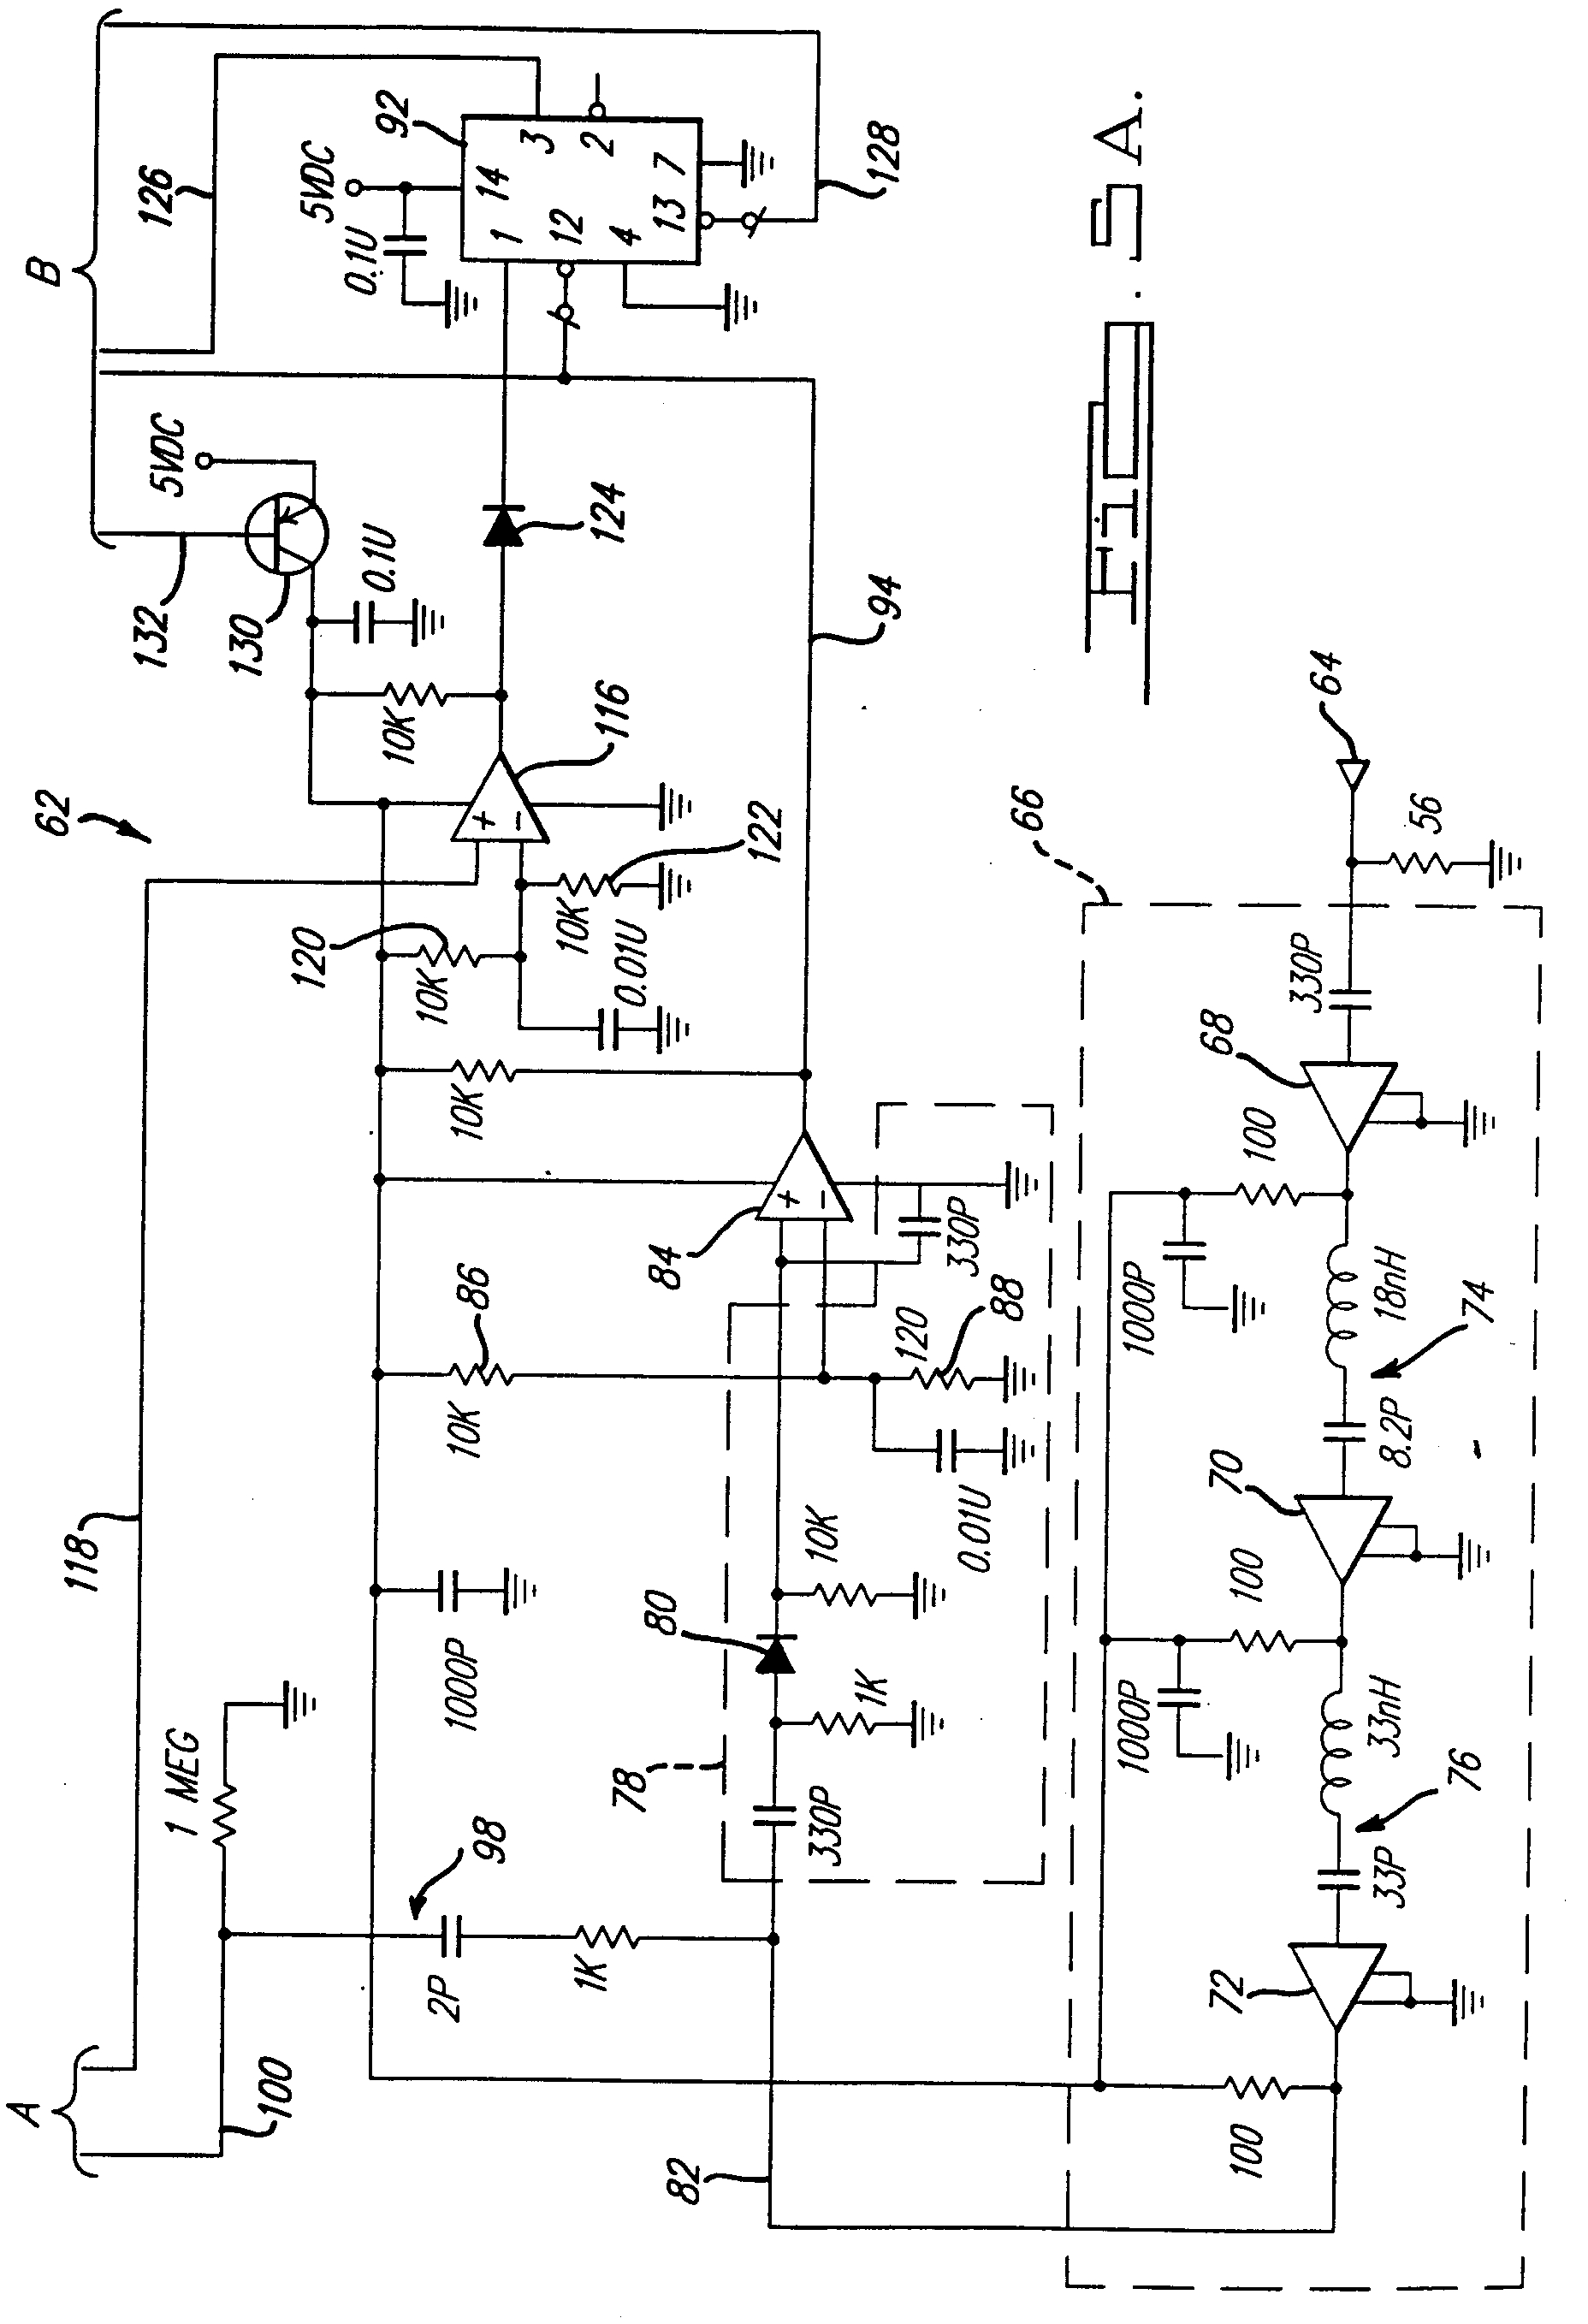 chamberlain garage door wiring diagram Download-Chamberlain Garage Door Opener Circuitram Wageuzi Frightening And Wiring Diagrams For Diagram Craftsman 19-l